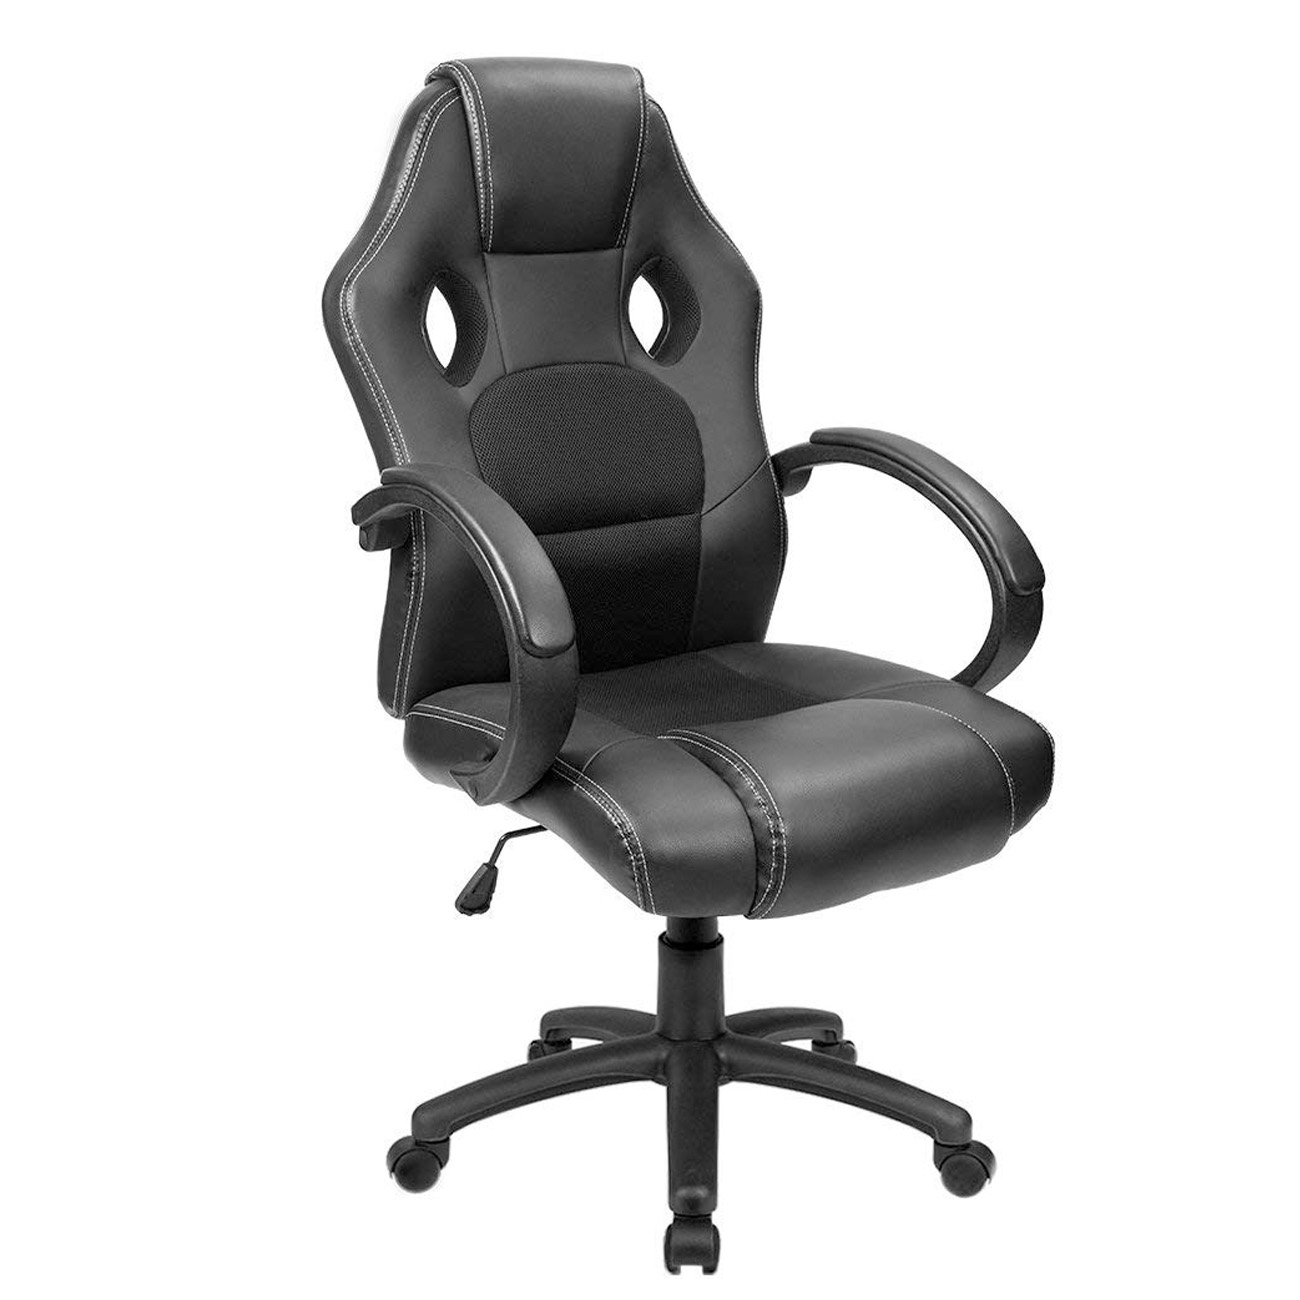 Ergonomic Chair Furmax Office Chair Desk Leather Gaming Chair High Back Ergonomic Adjustable Racing Chair Task Swivel Executive Computer Chair Headrest And Lumbar